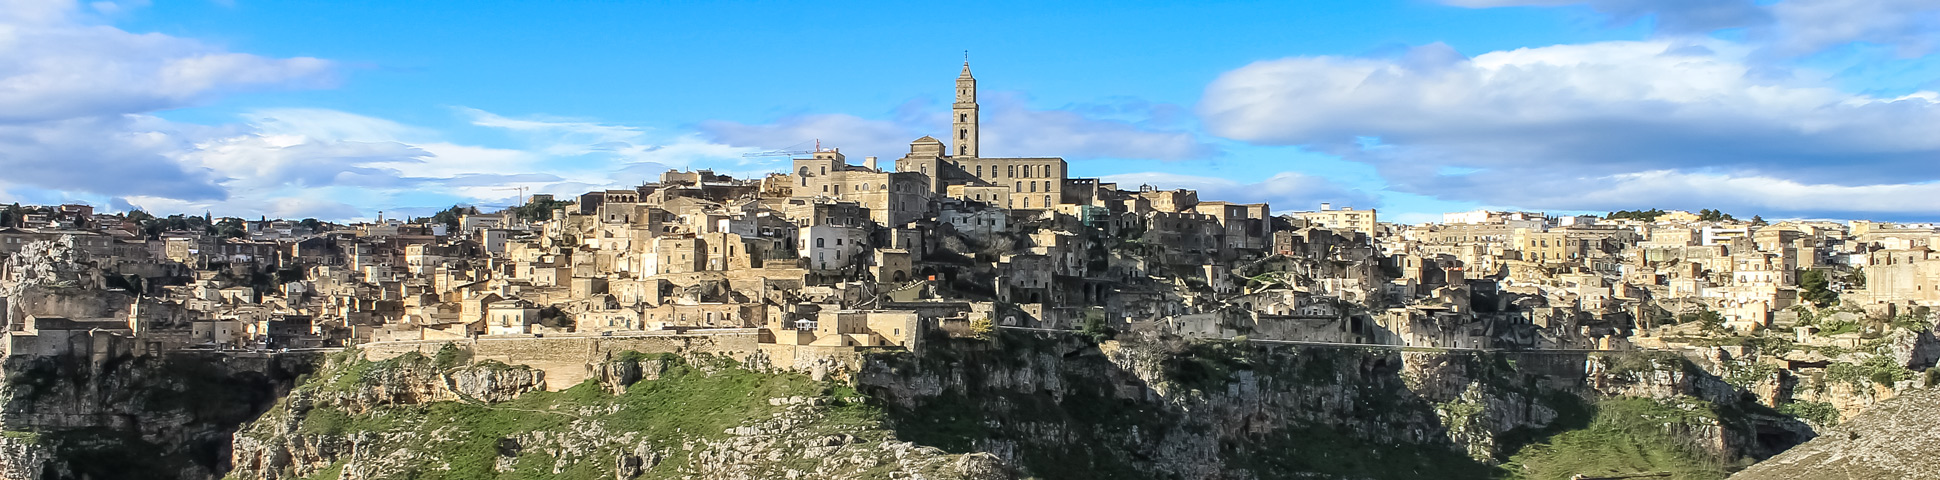 Panoramic views from Hiking in Southern Italy